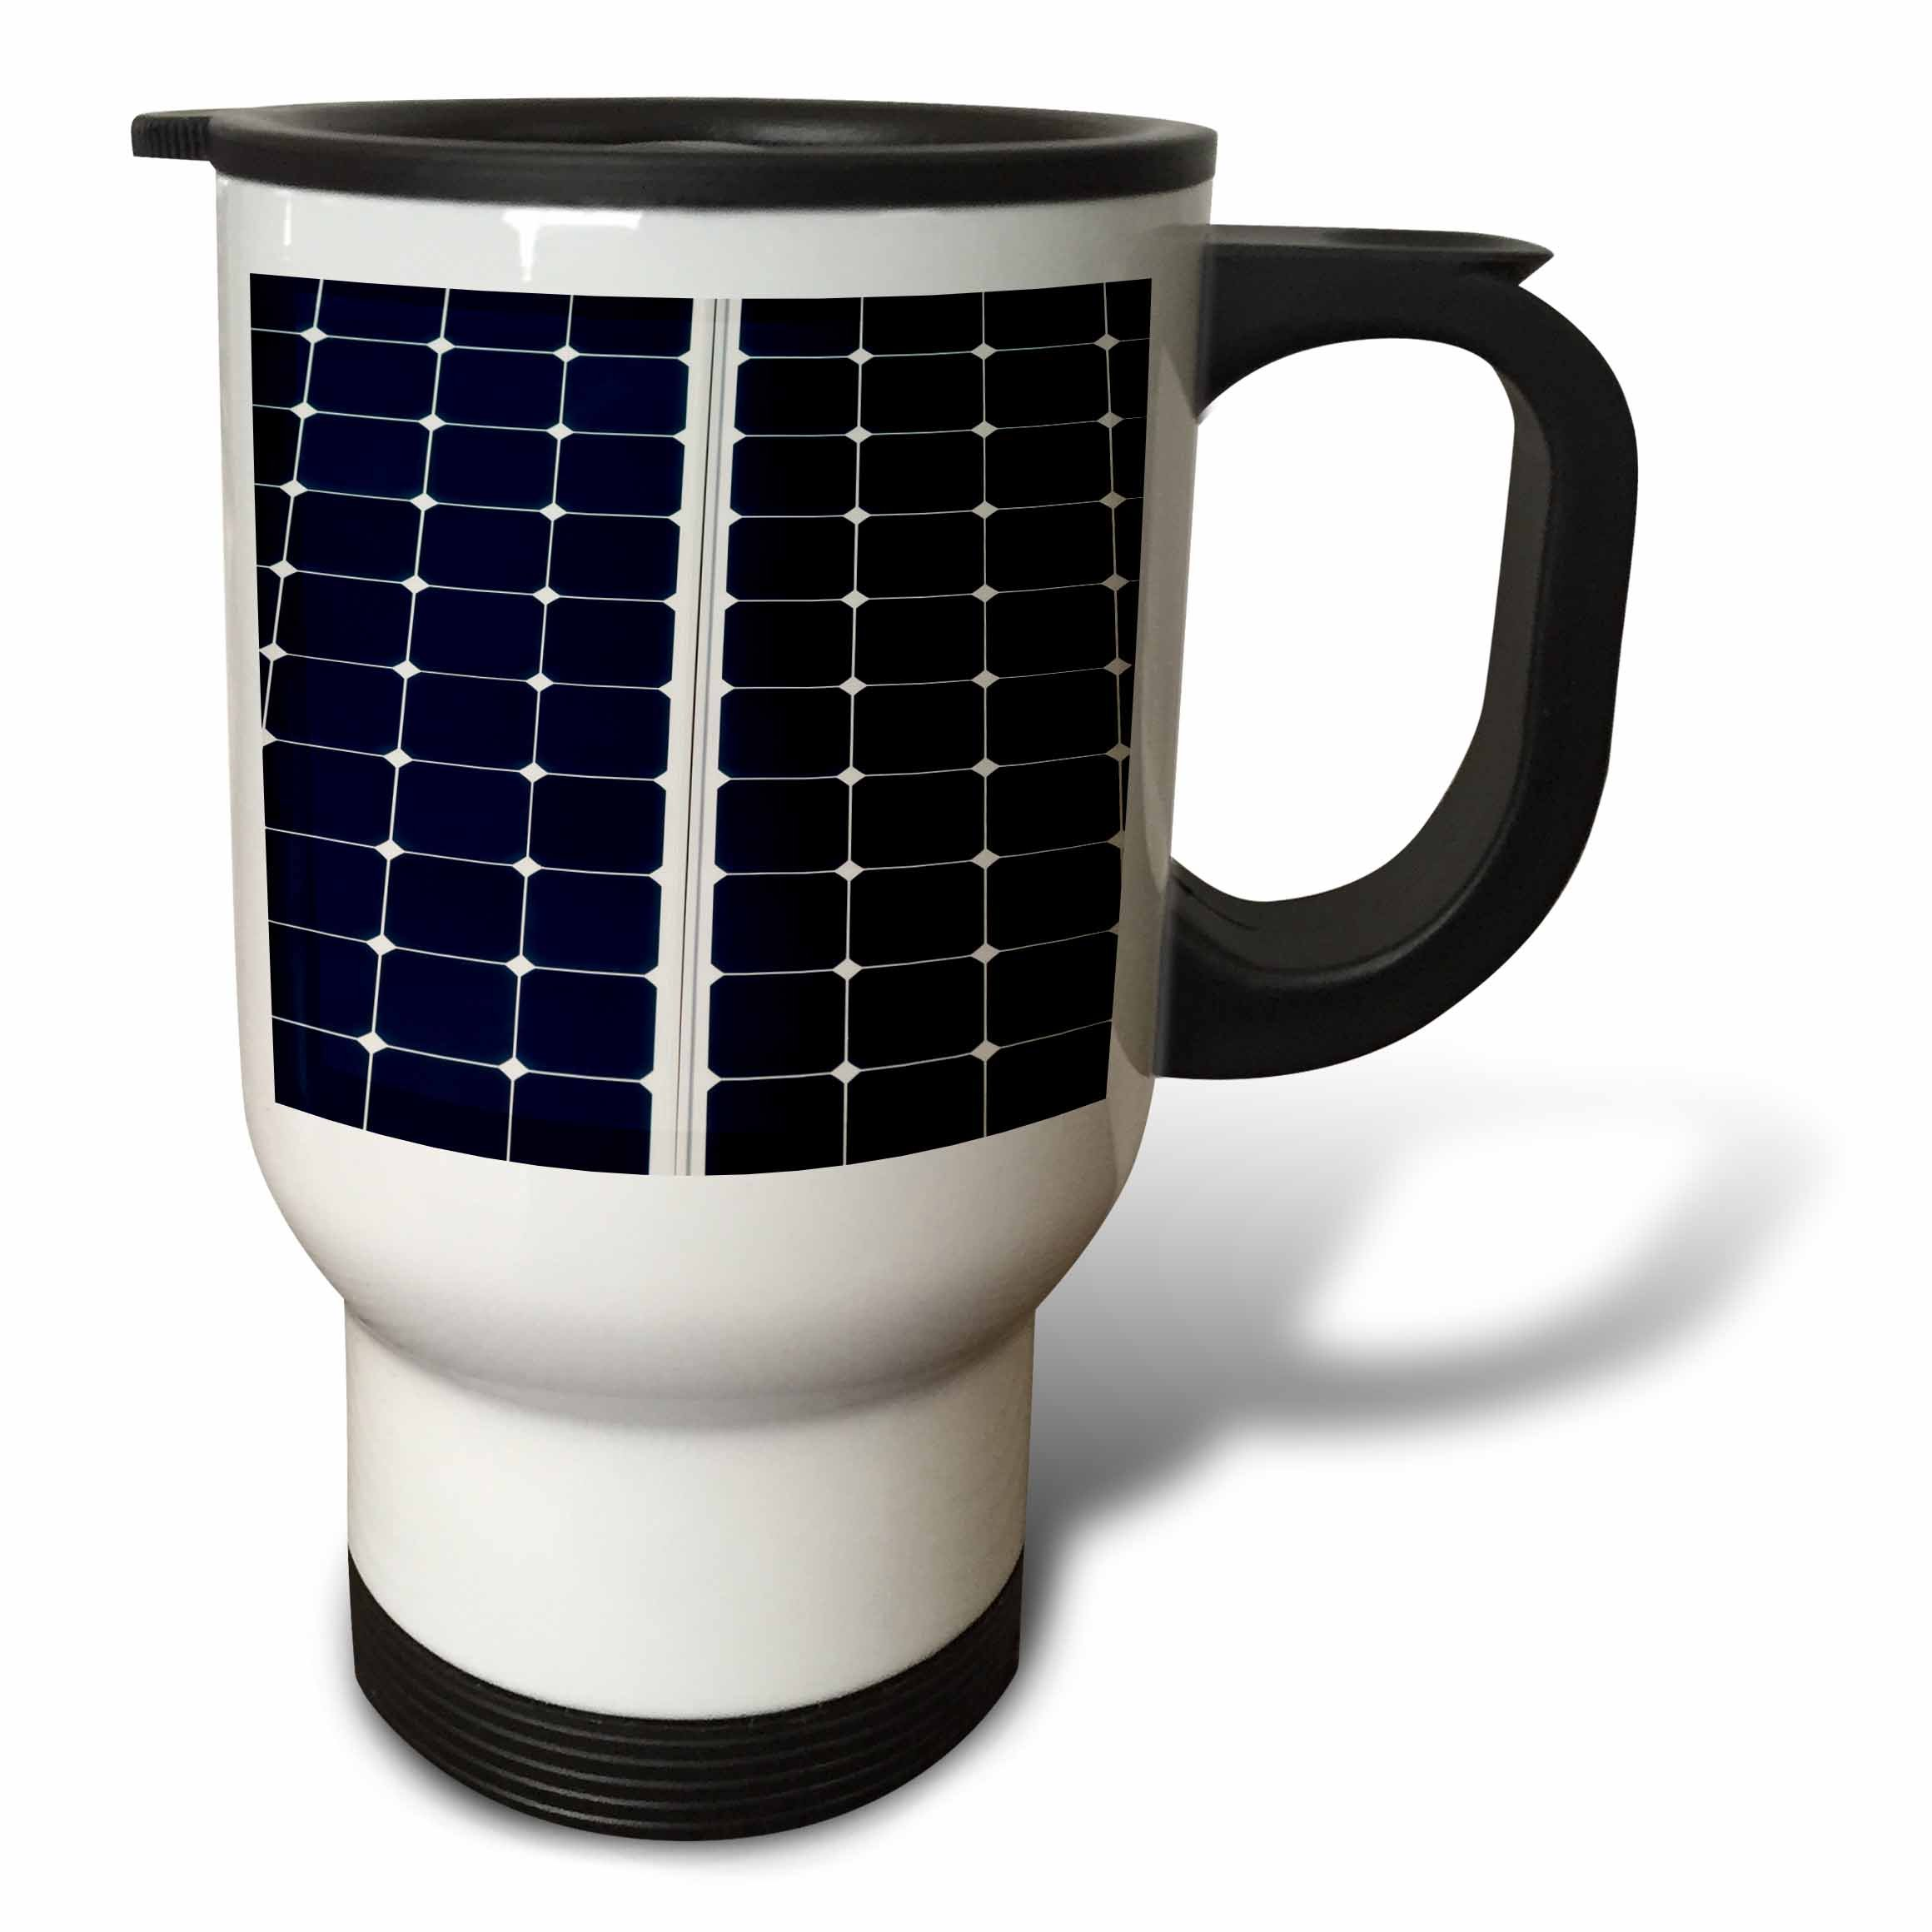 3dRose Alexis Photography - Objects - Dark blue solar power panel divided into two parts by white frame - 14oz Stainless Steel Travel Mug (tm_271344_1)